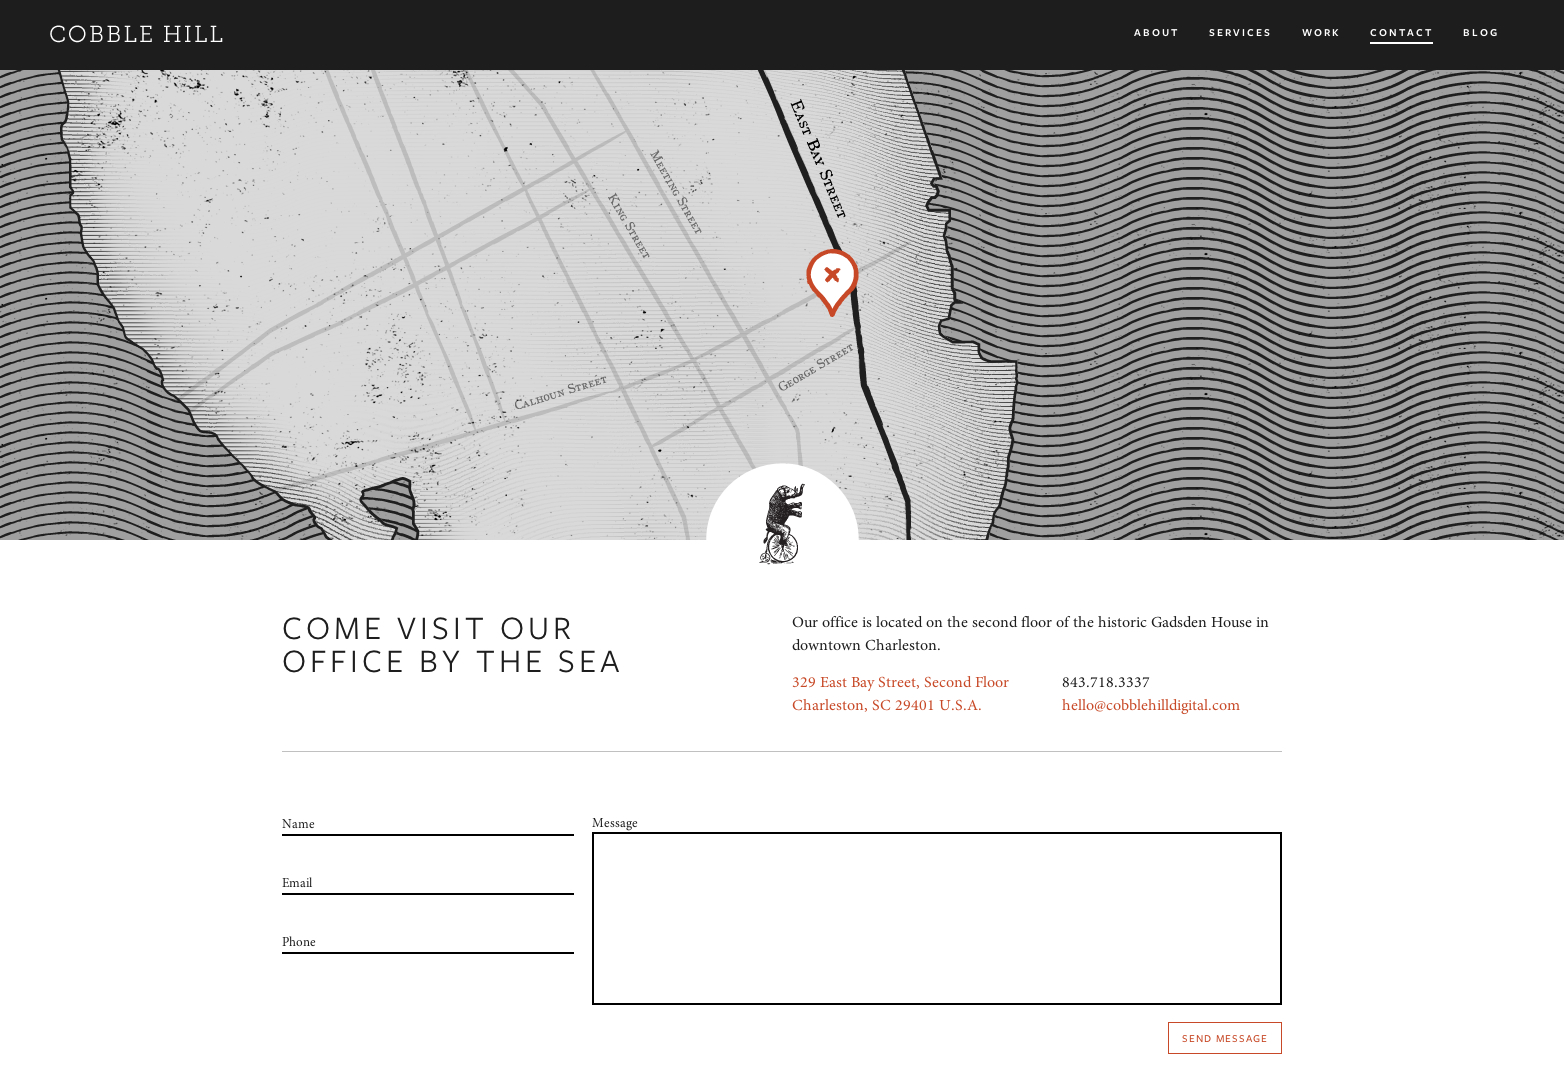 Contact | Cobble Hill – A Creative Agency and Design Studio in Charleston, SC